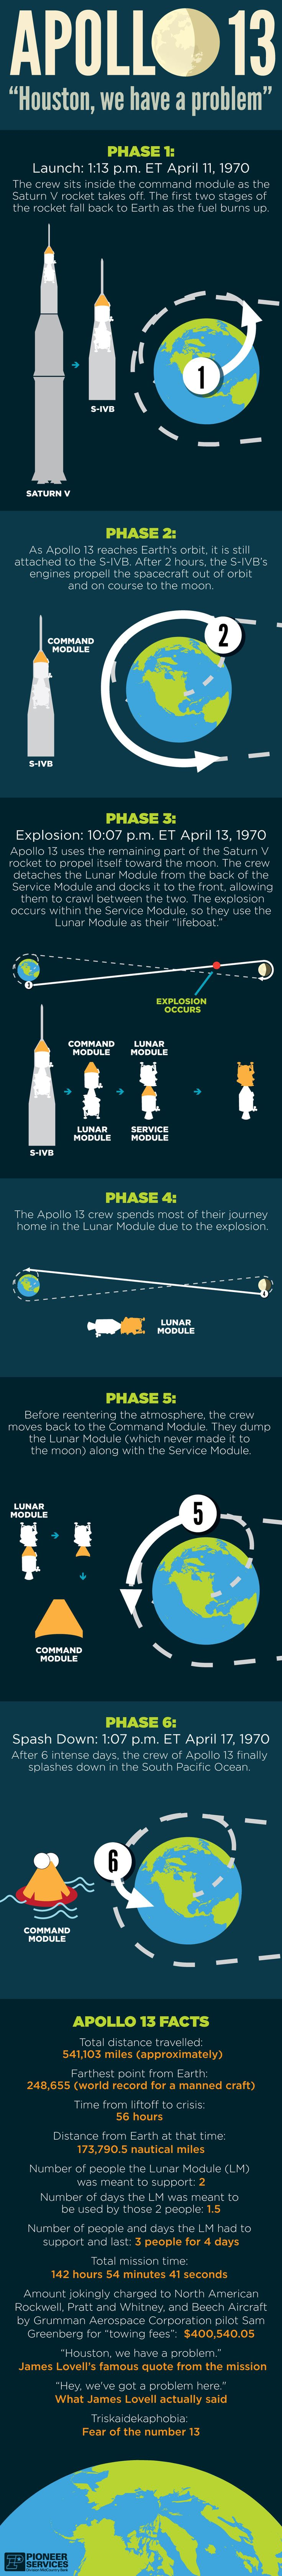 Apollo 13 Houston, We Have A Problem #infographic #Space #Apollo13 #Houston